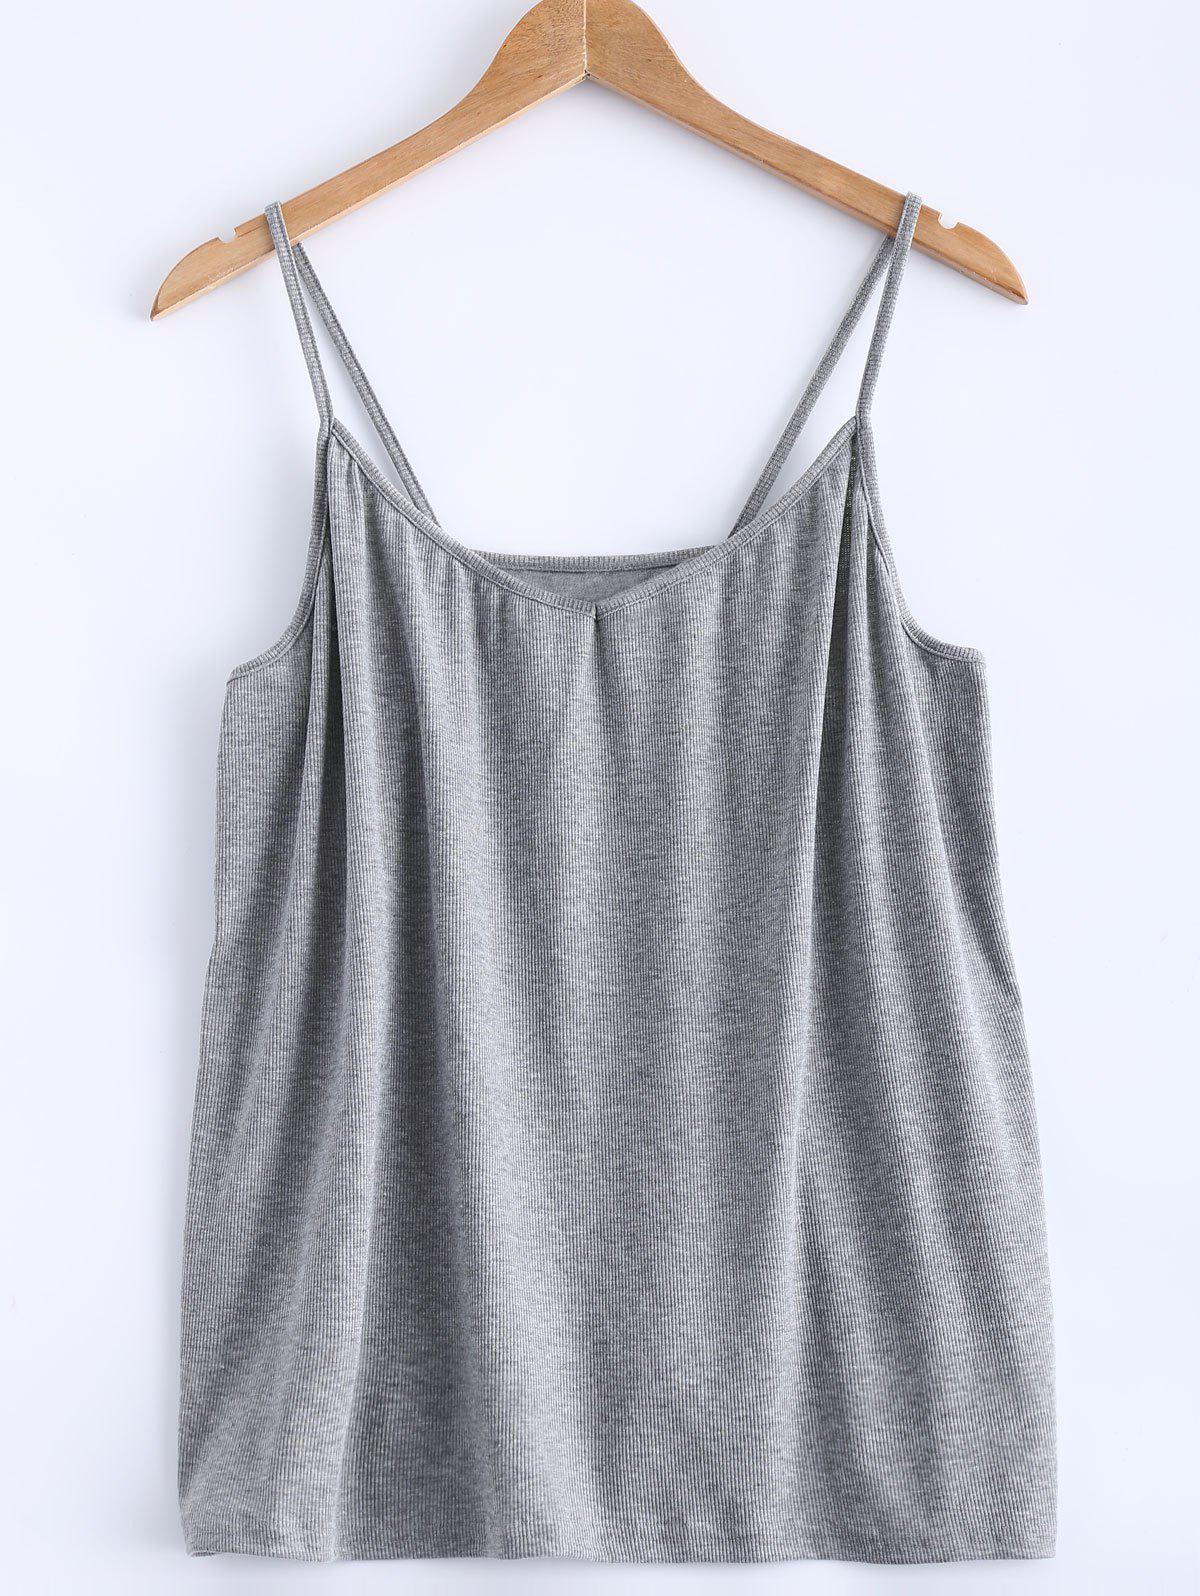 Open Back Stretchy Ribbed Tank Top - GRAY 4XL